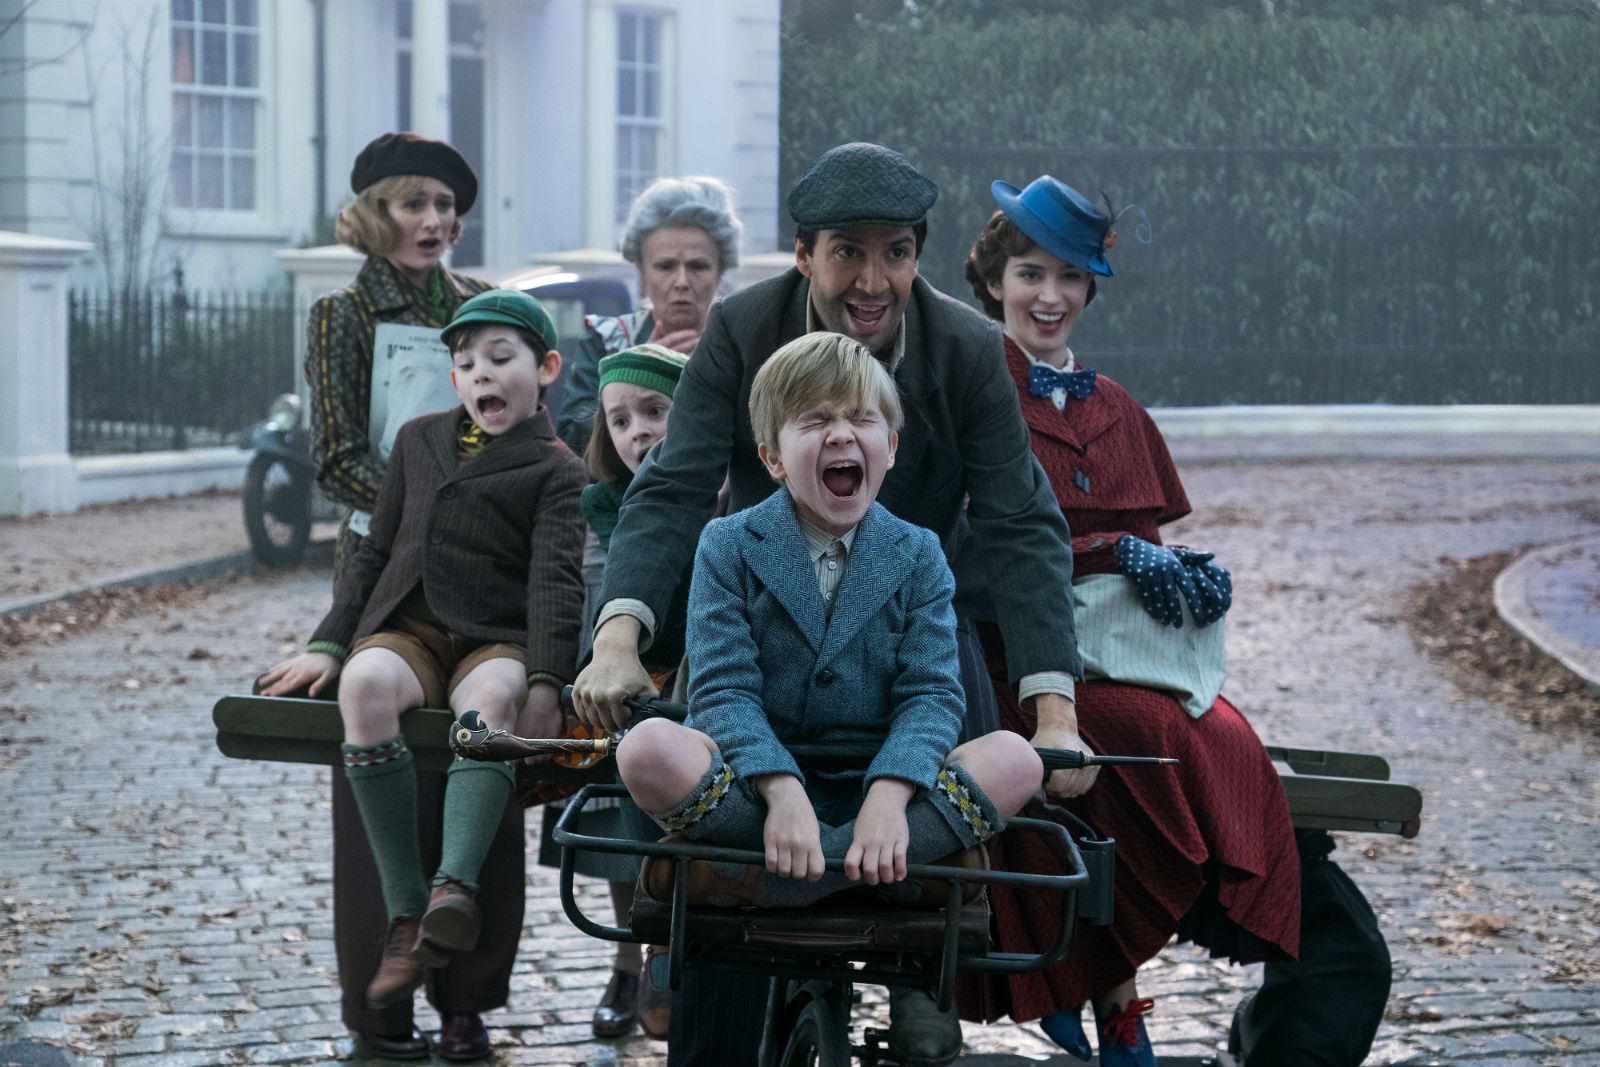 A scene from the thoroughly delightful Mary Poppins Returns.